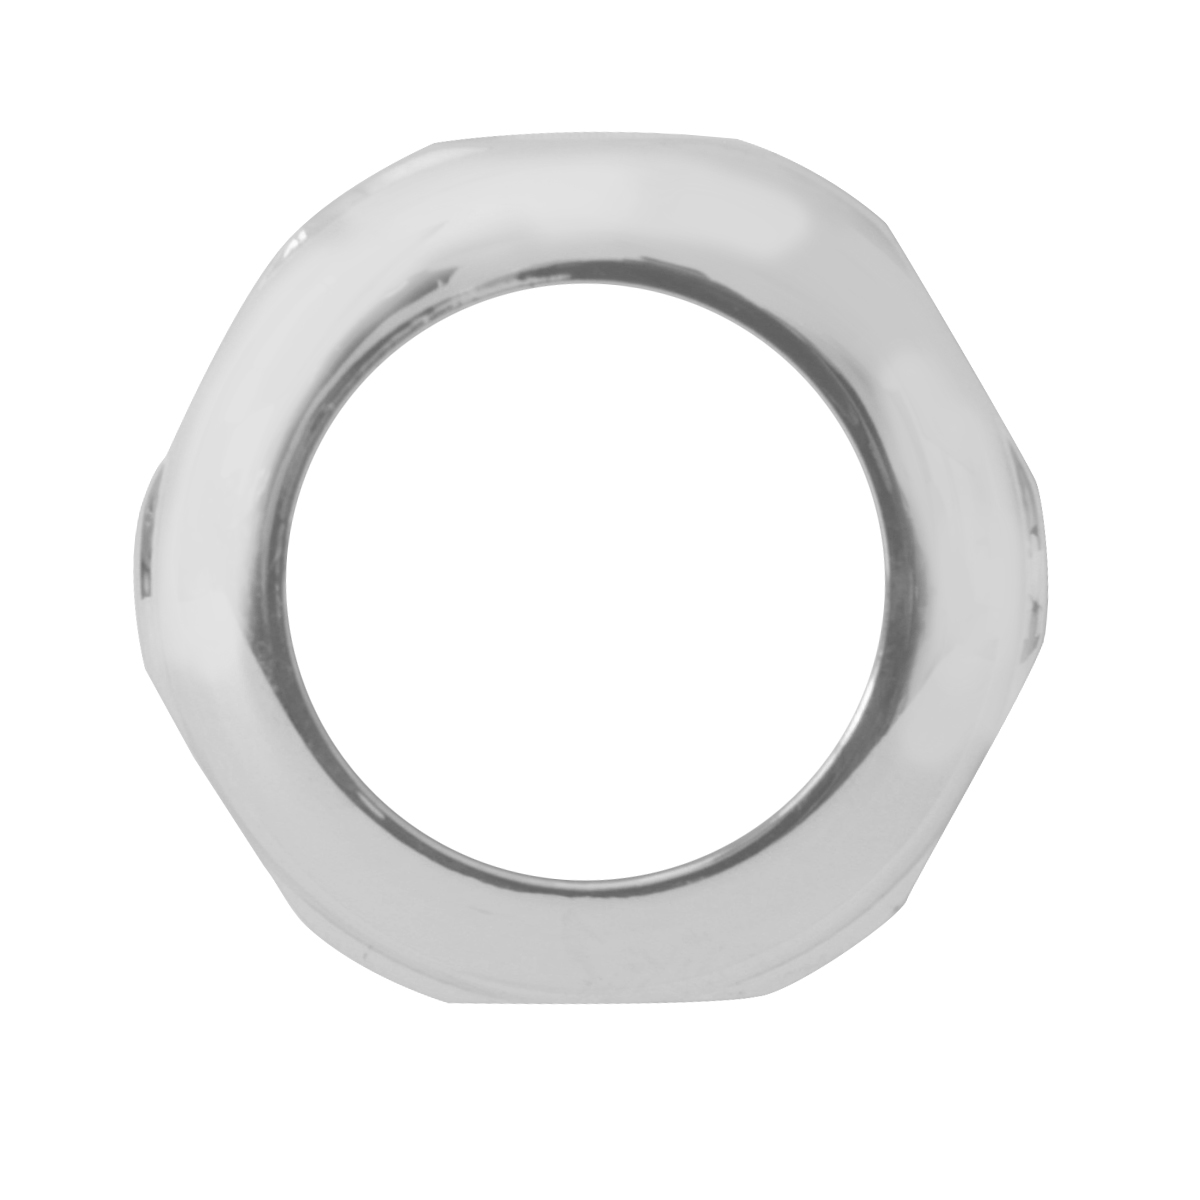 67100 Pete Chrome Steel Face Nut